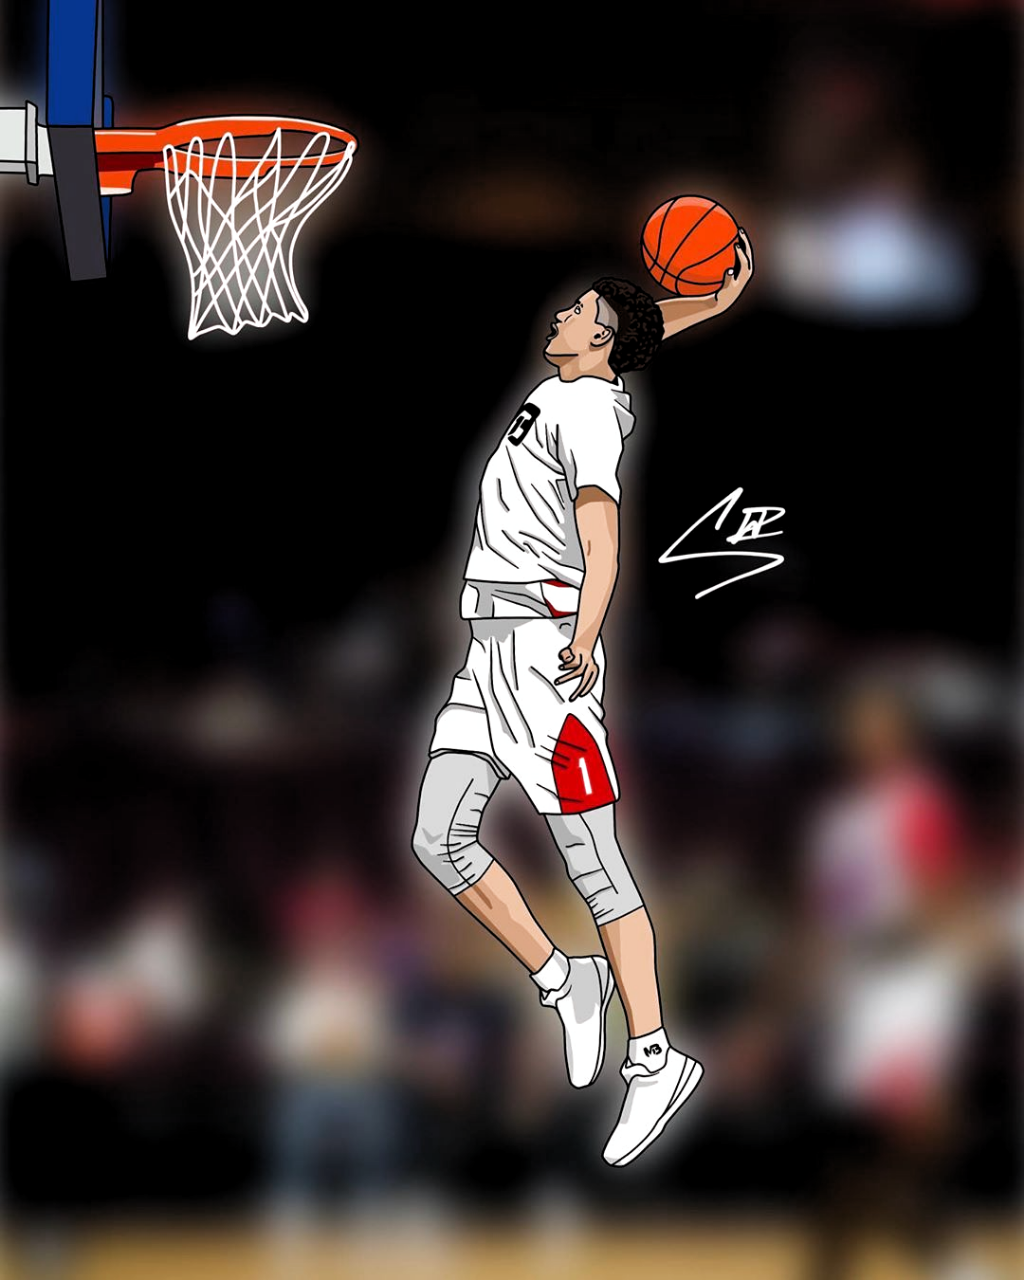 Follow For Cartoon On Instagram Art Of Lamelo Ball Tag Melo To Get Him To Notice Please In 2020 Lamelo Ball Nba Wallpapers Basketball Wallpapers Hd